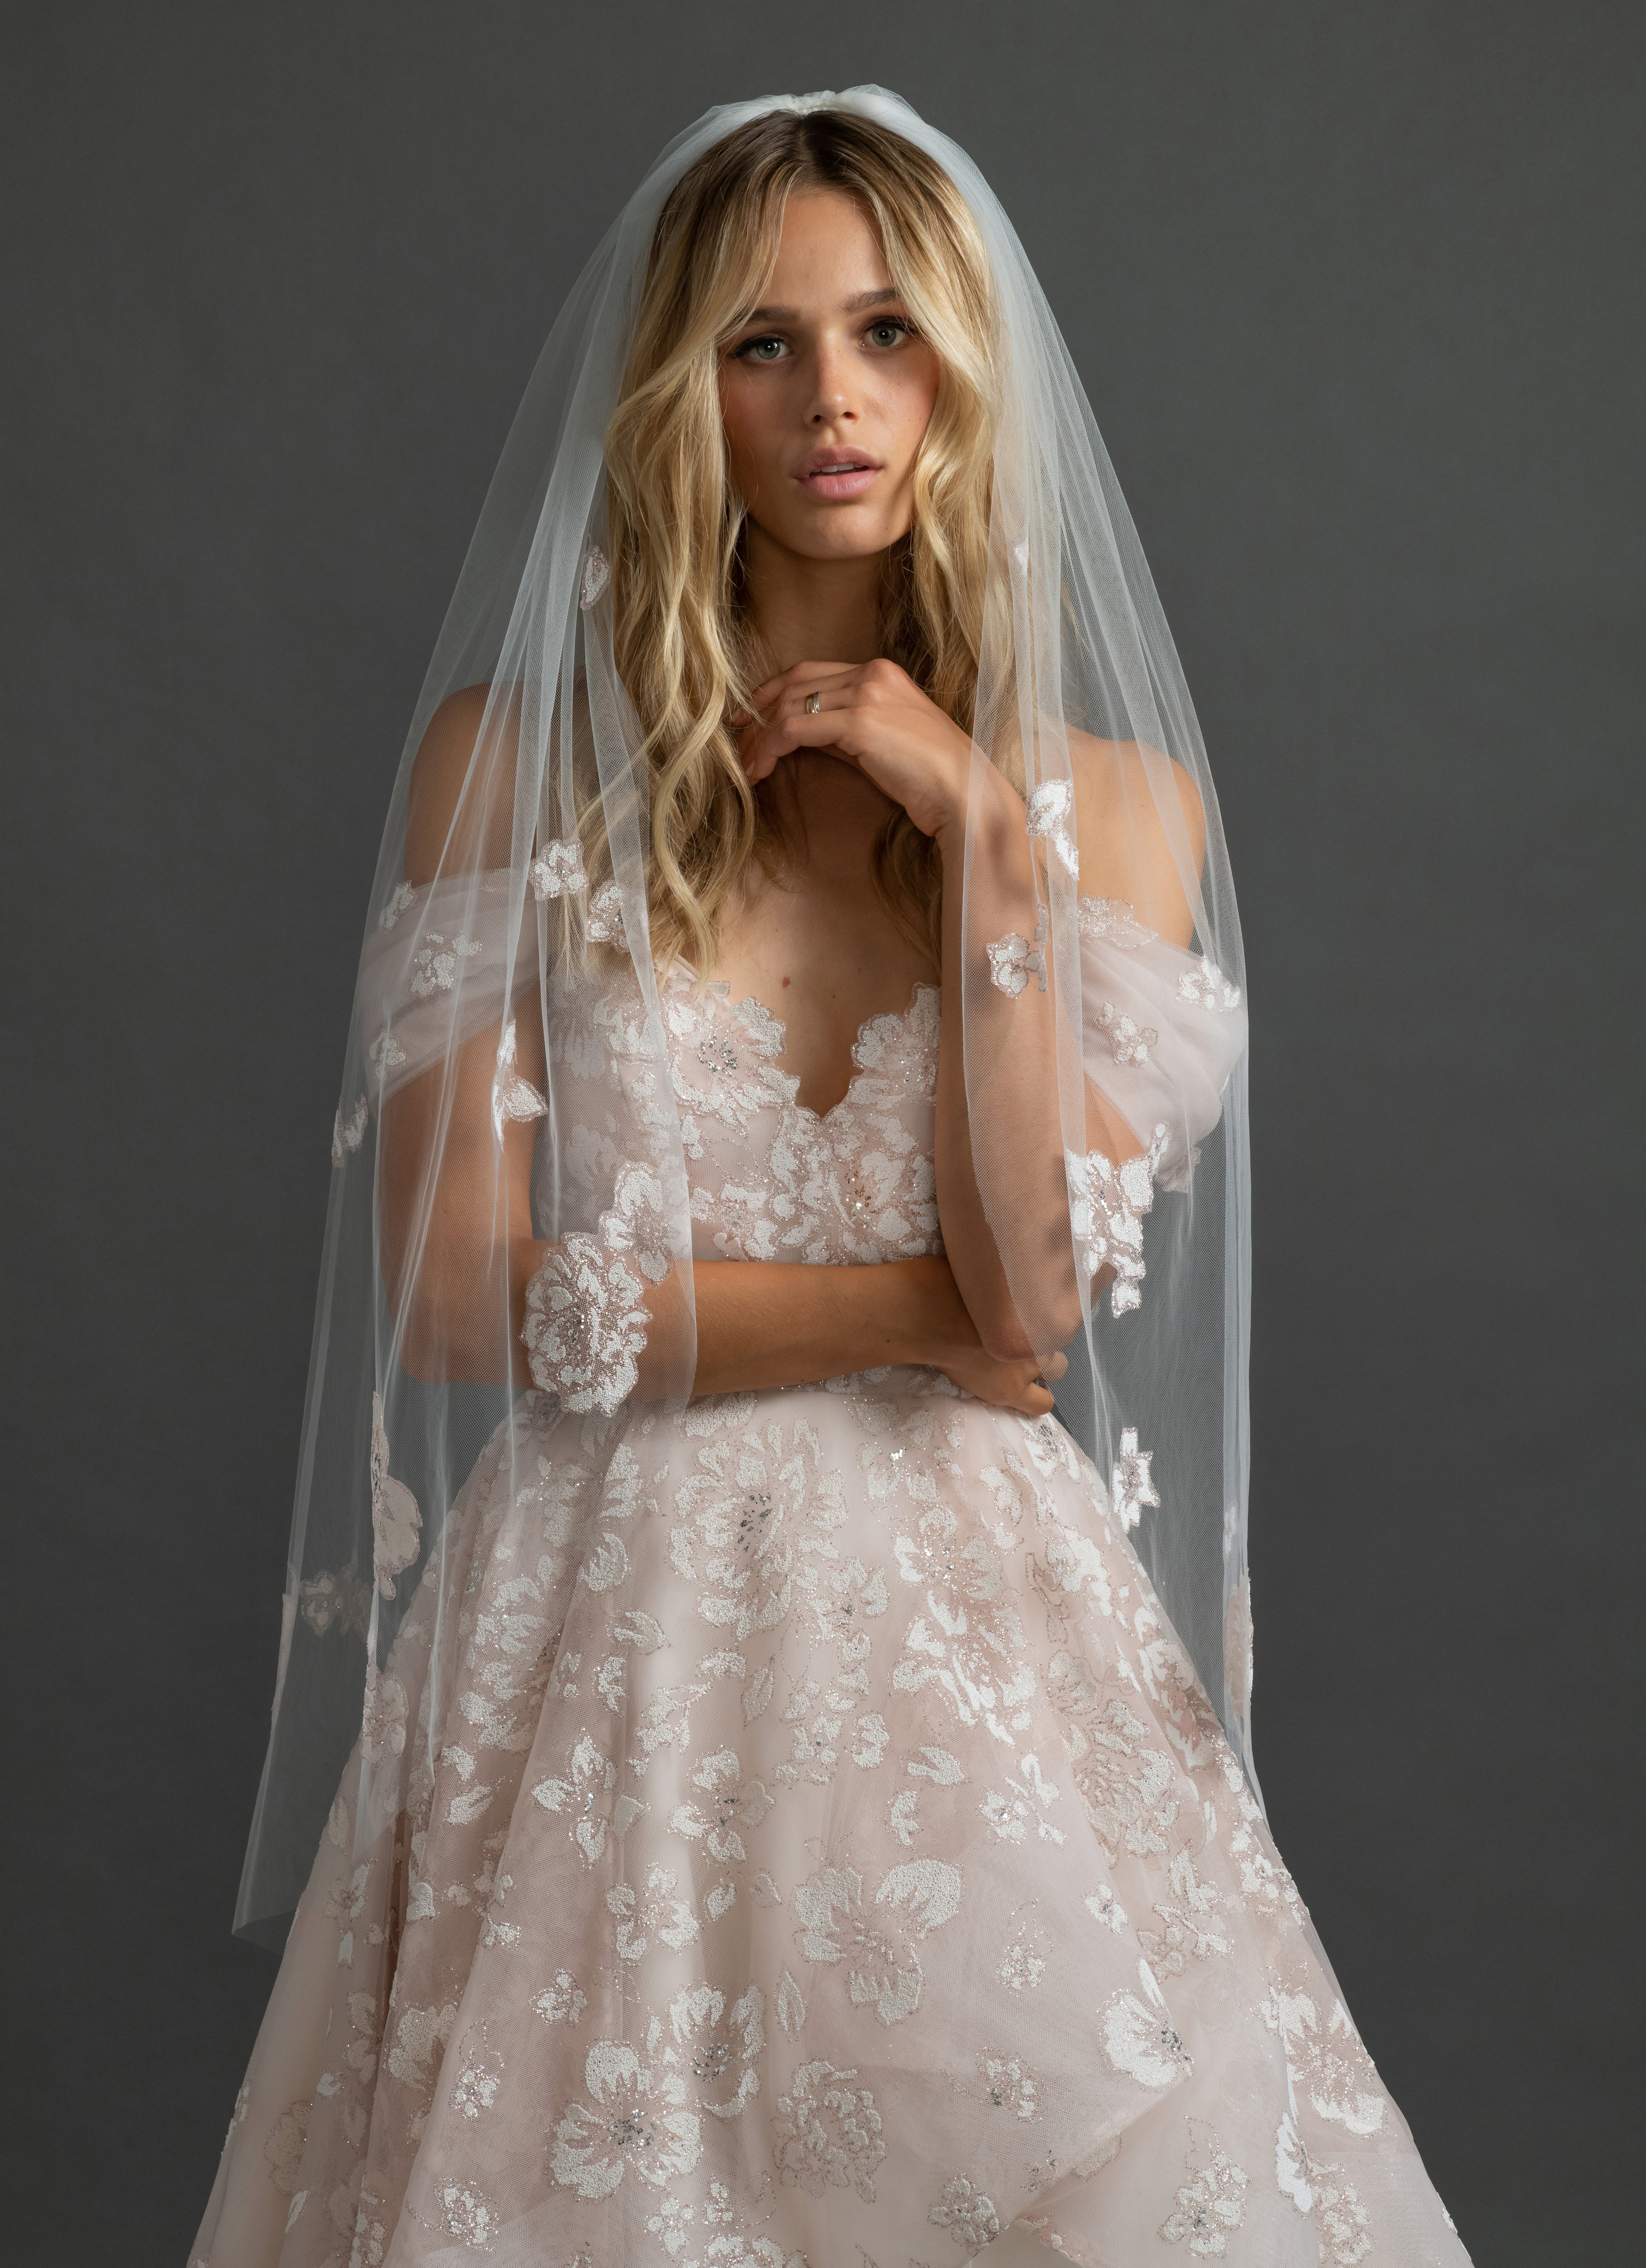 Bridal Gowns And Wedding Dresses By Jlm Couture Style Vf01 Reagan